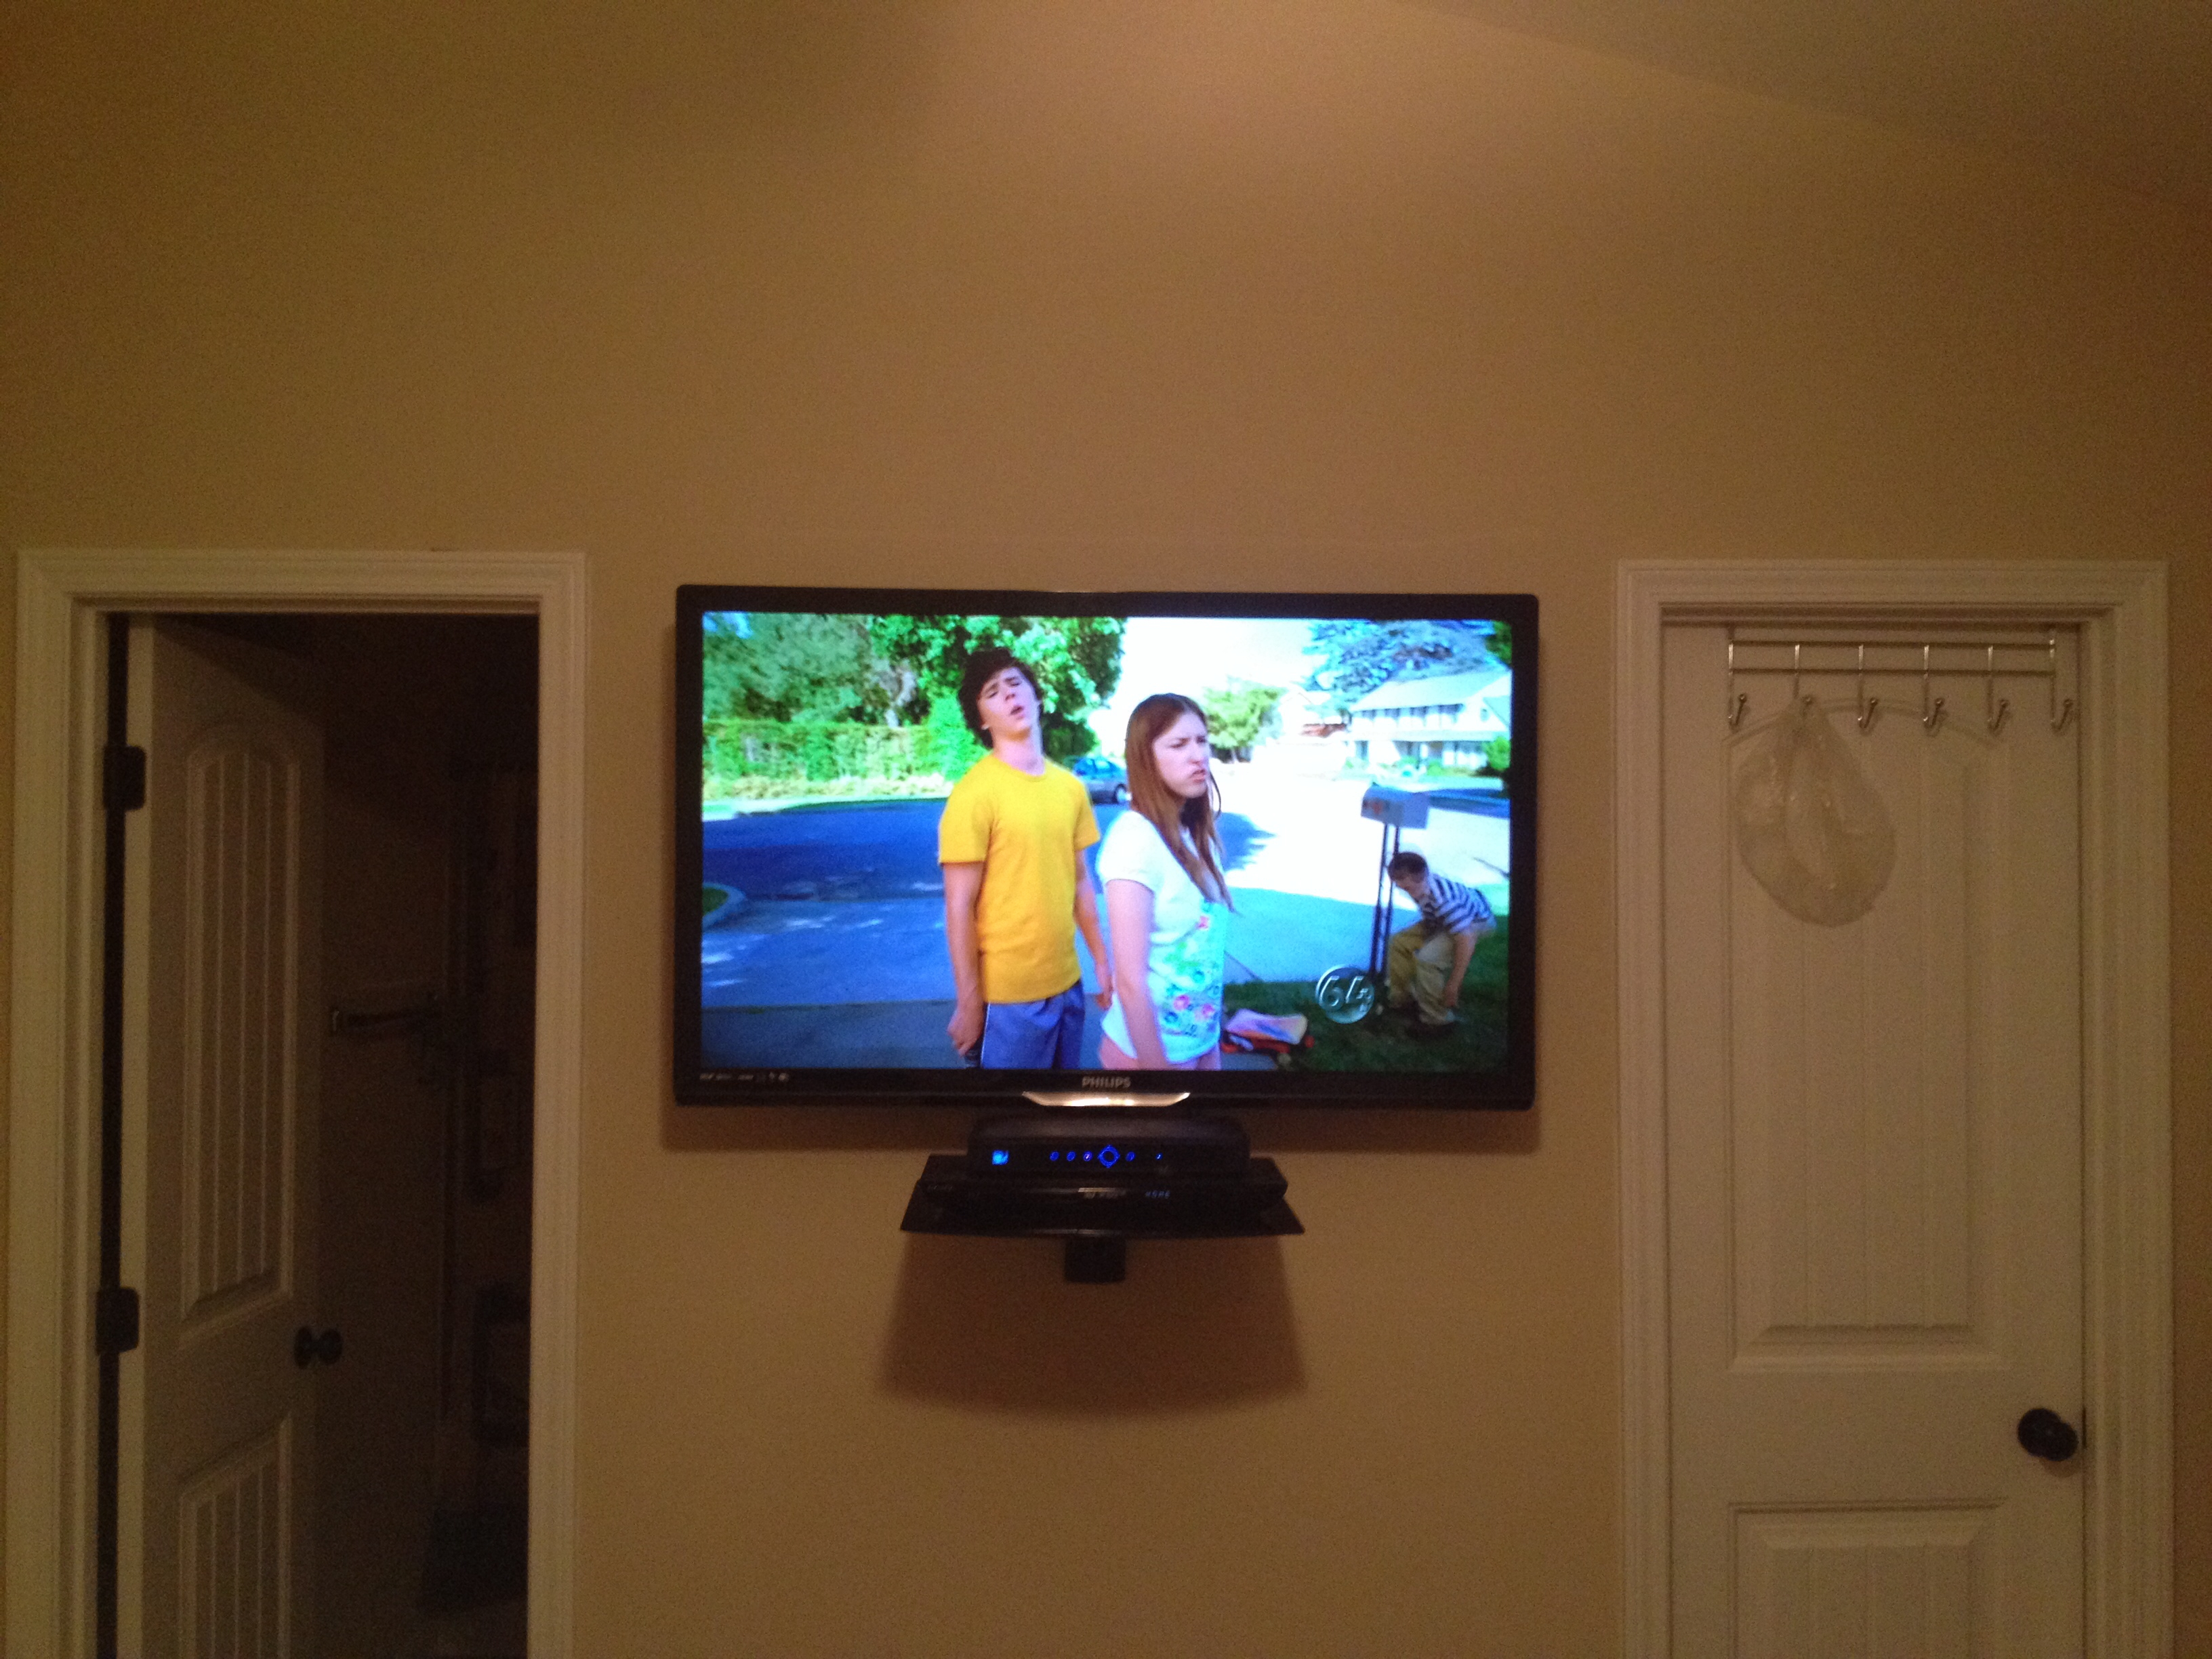 Led Tv Wall Mount Installation With Floating Glass Shelf For Cable With Glass Shelf For Dvd Player (Image 9 of 15)